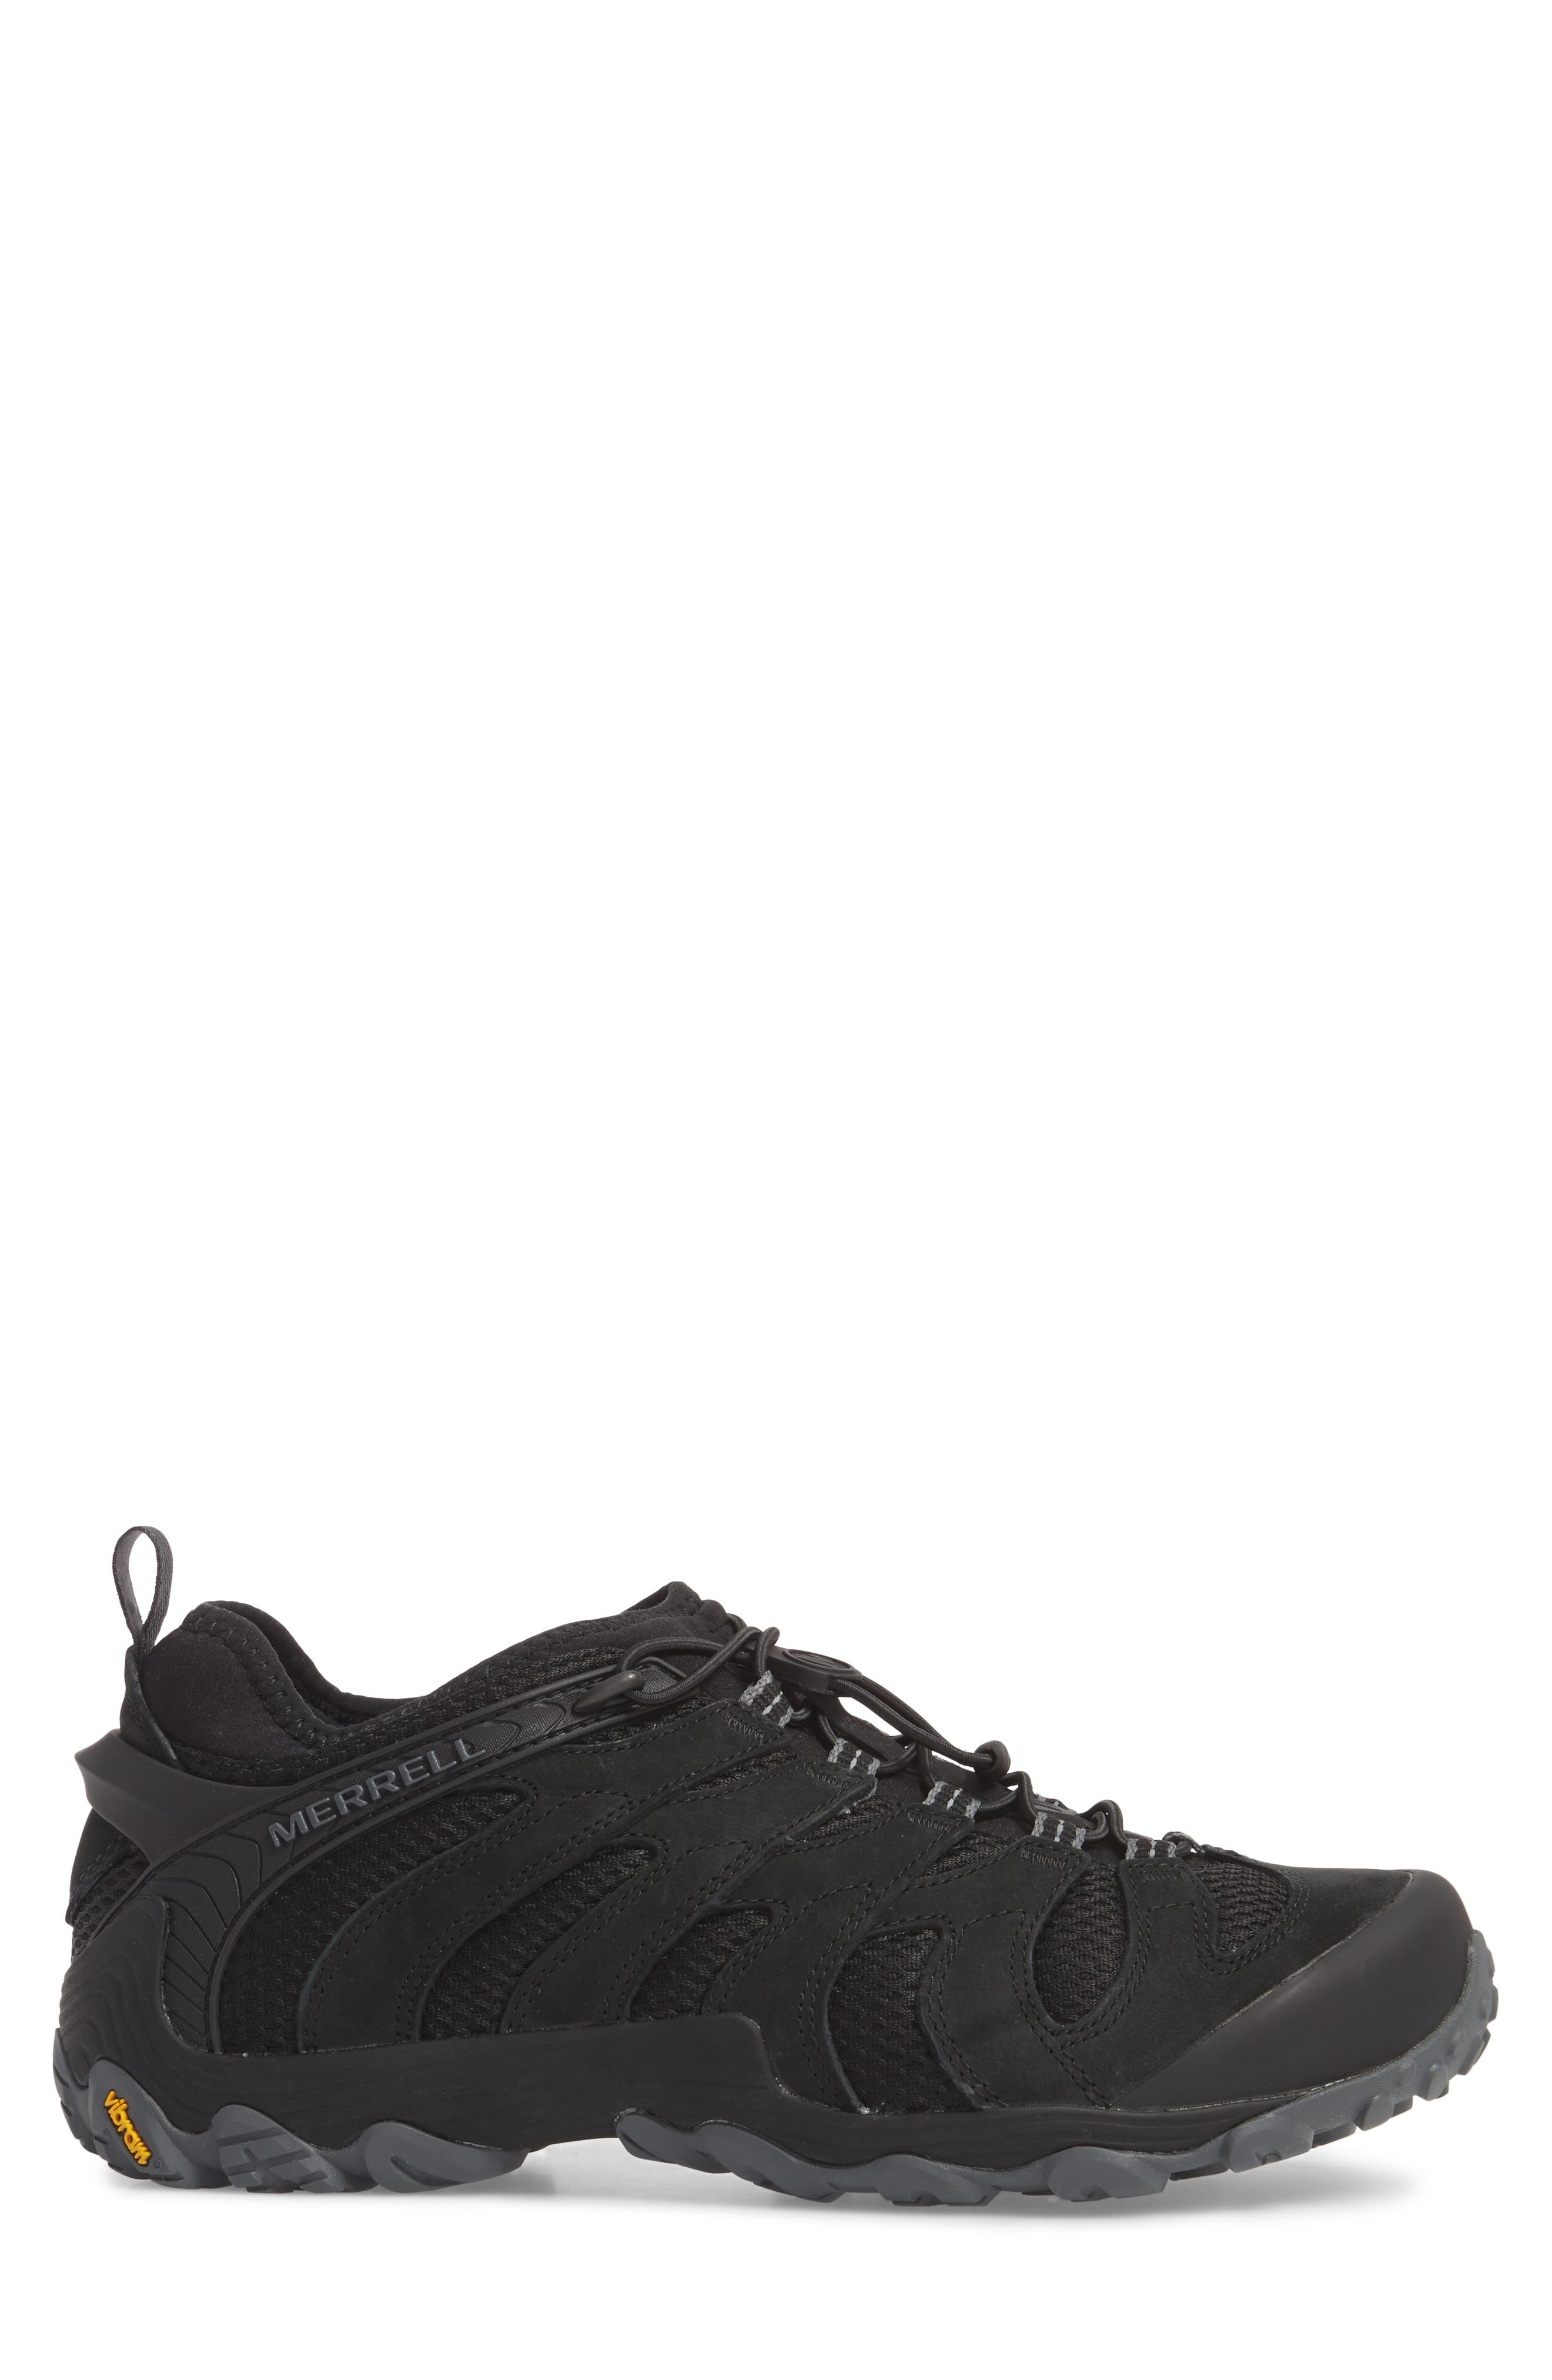 MERRELL,                             Chameleon 7 Stretch Hiking Shoe,                             Alternate thumbnail 3, color,                             BLACK